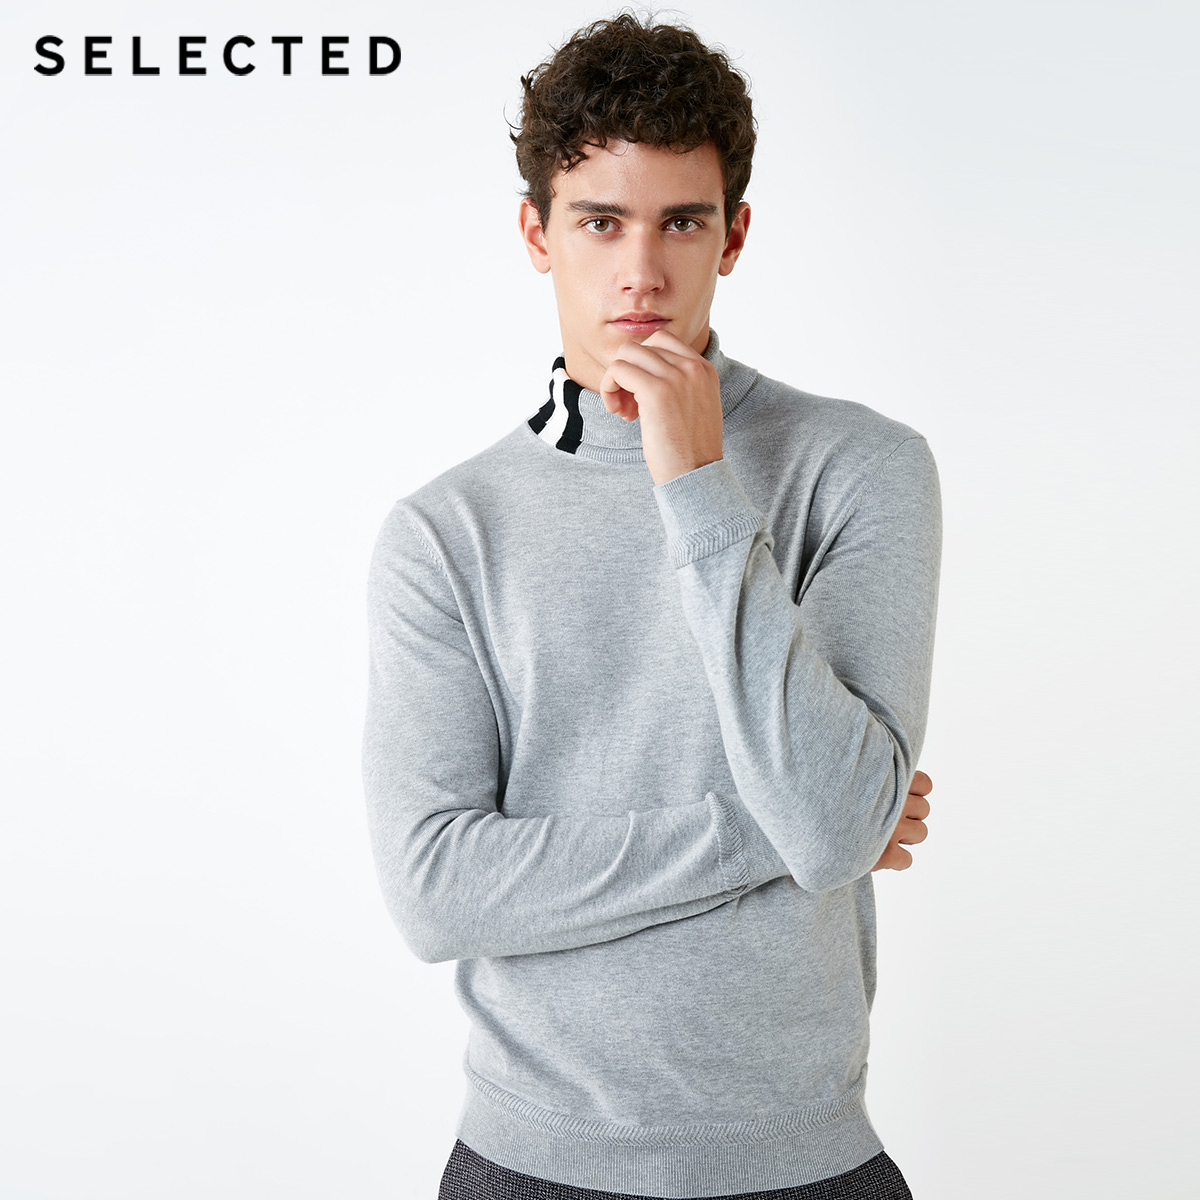 SELECTED Men's 100% Cotton Striped High-necked Knit S|418424523